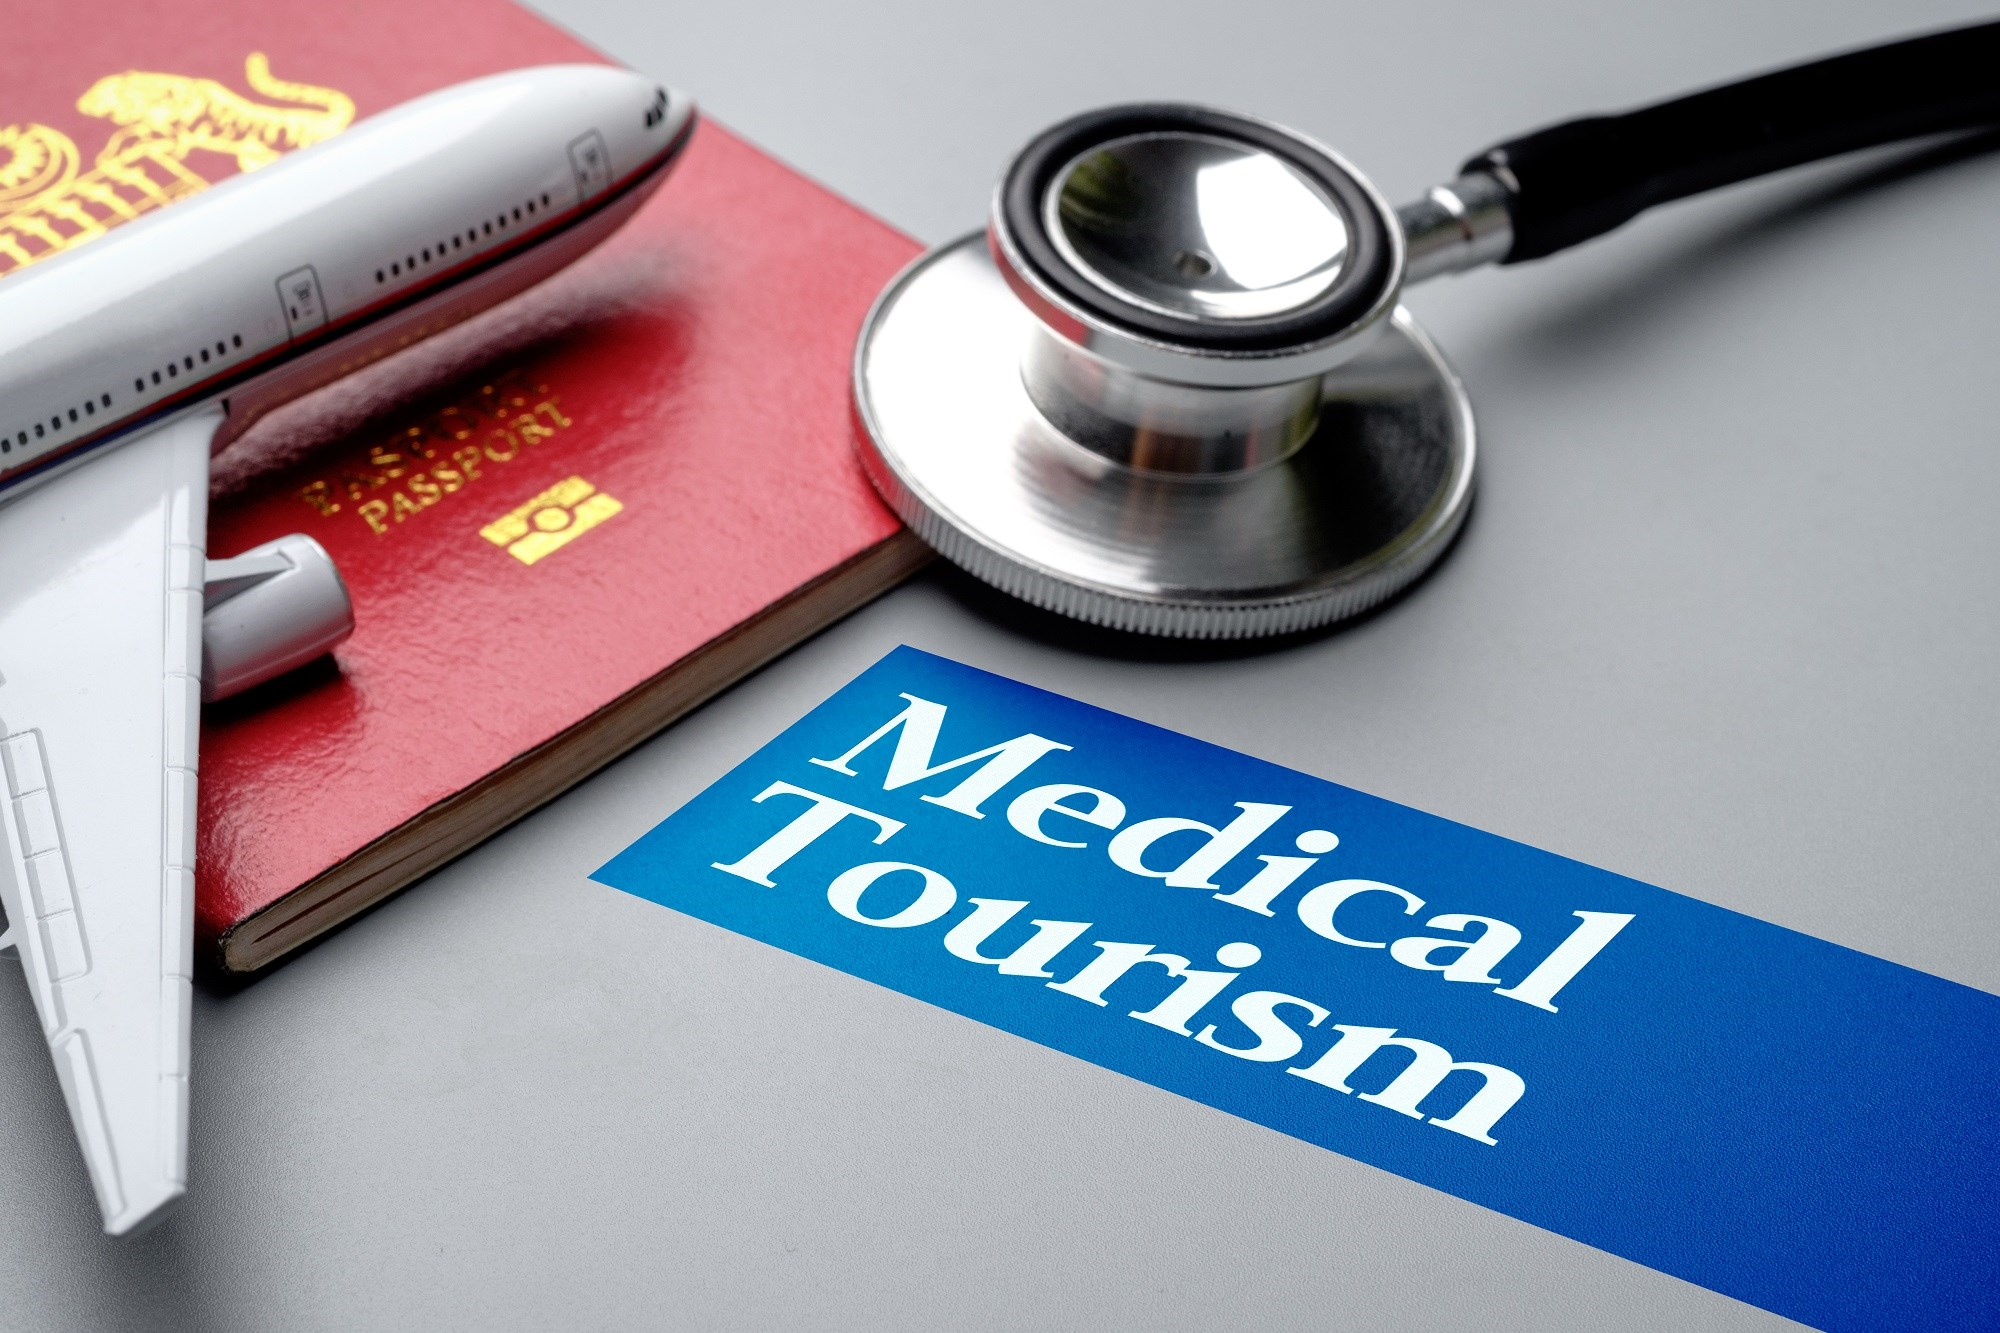 The AMA recommends that physicians become familiar with the issues in medical tourism; help patients understand the risks and likely benefits.